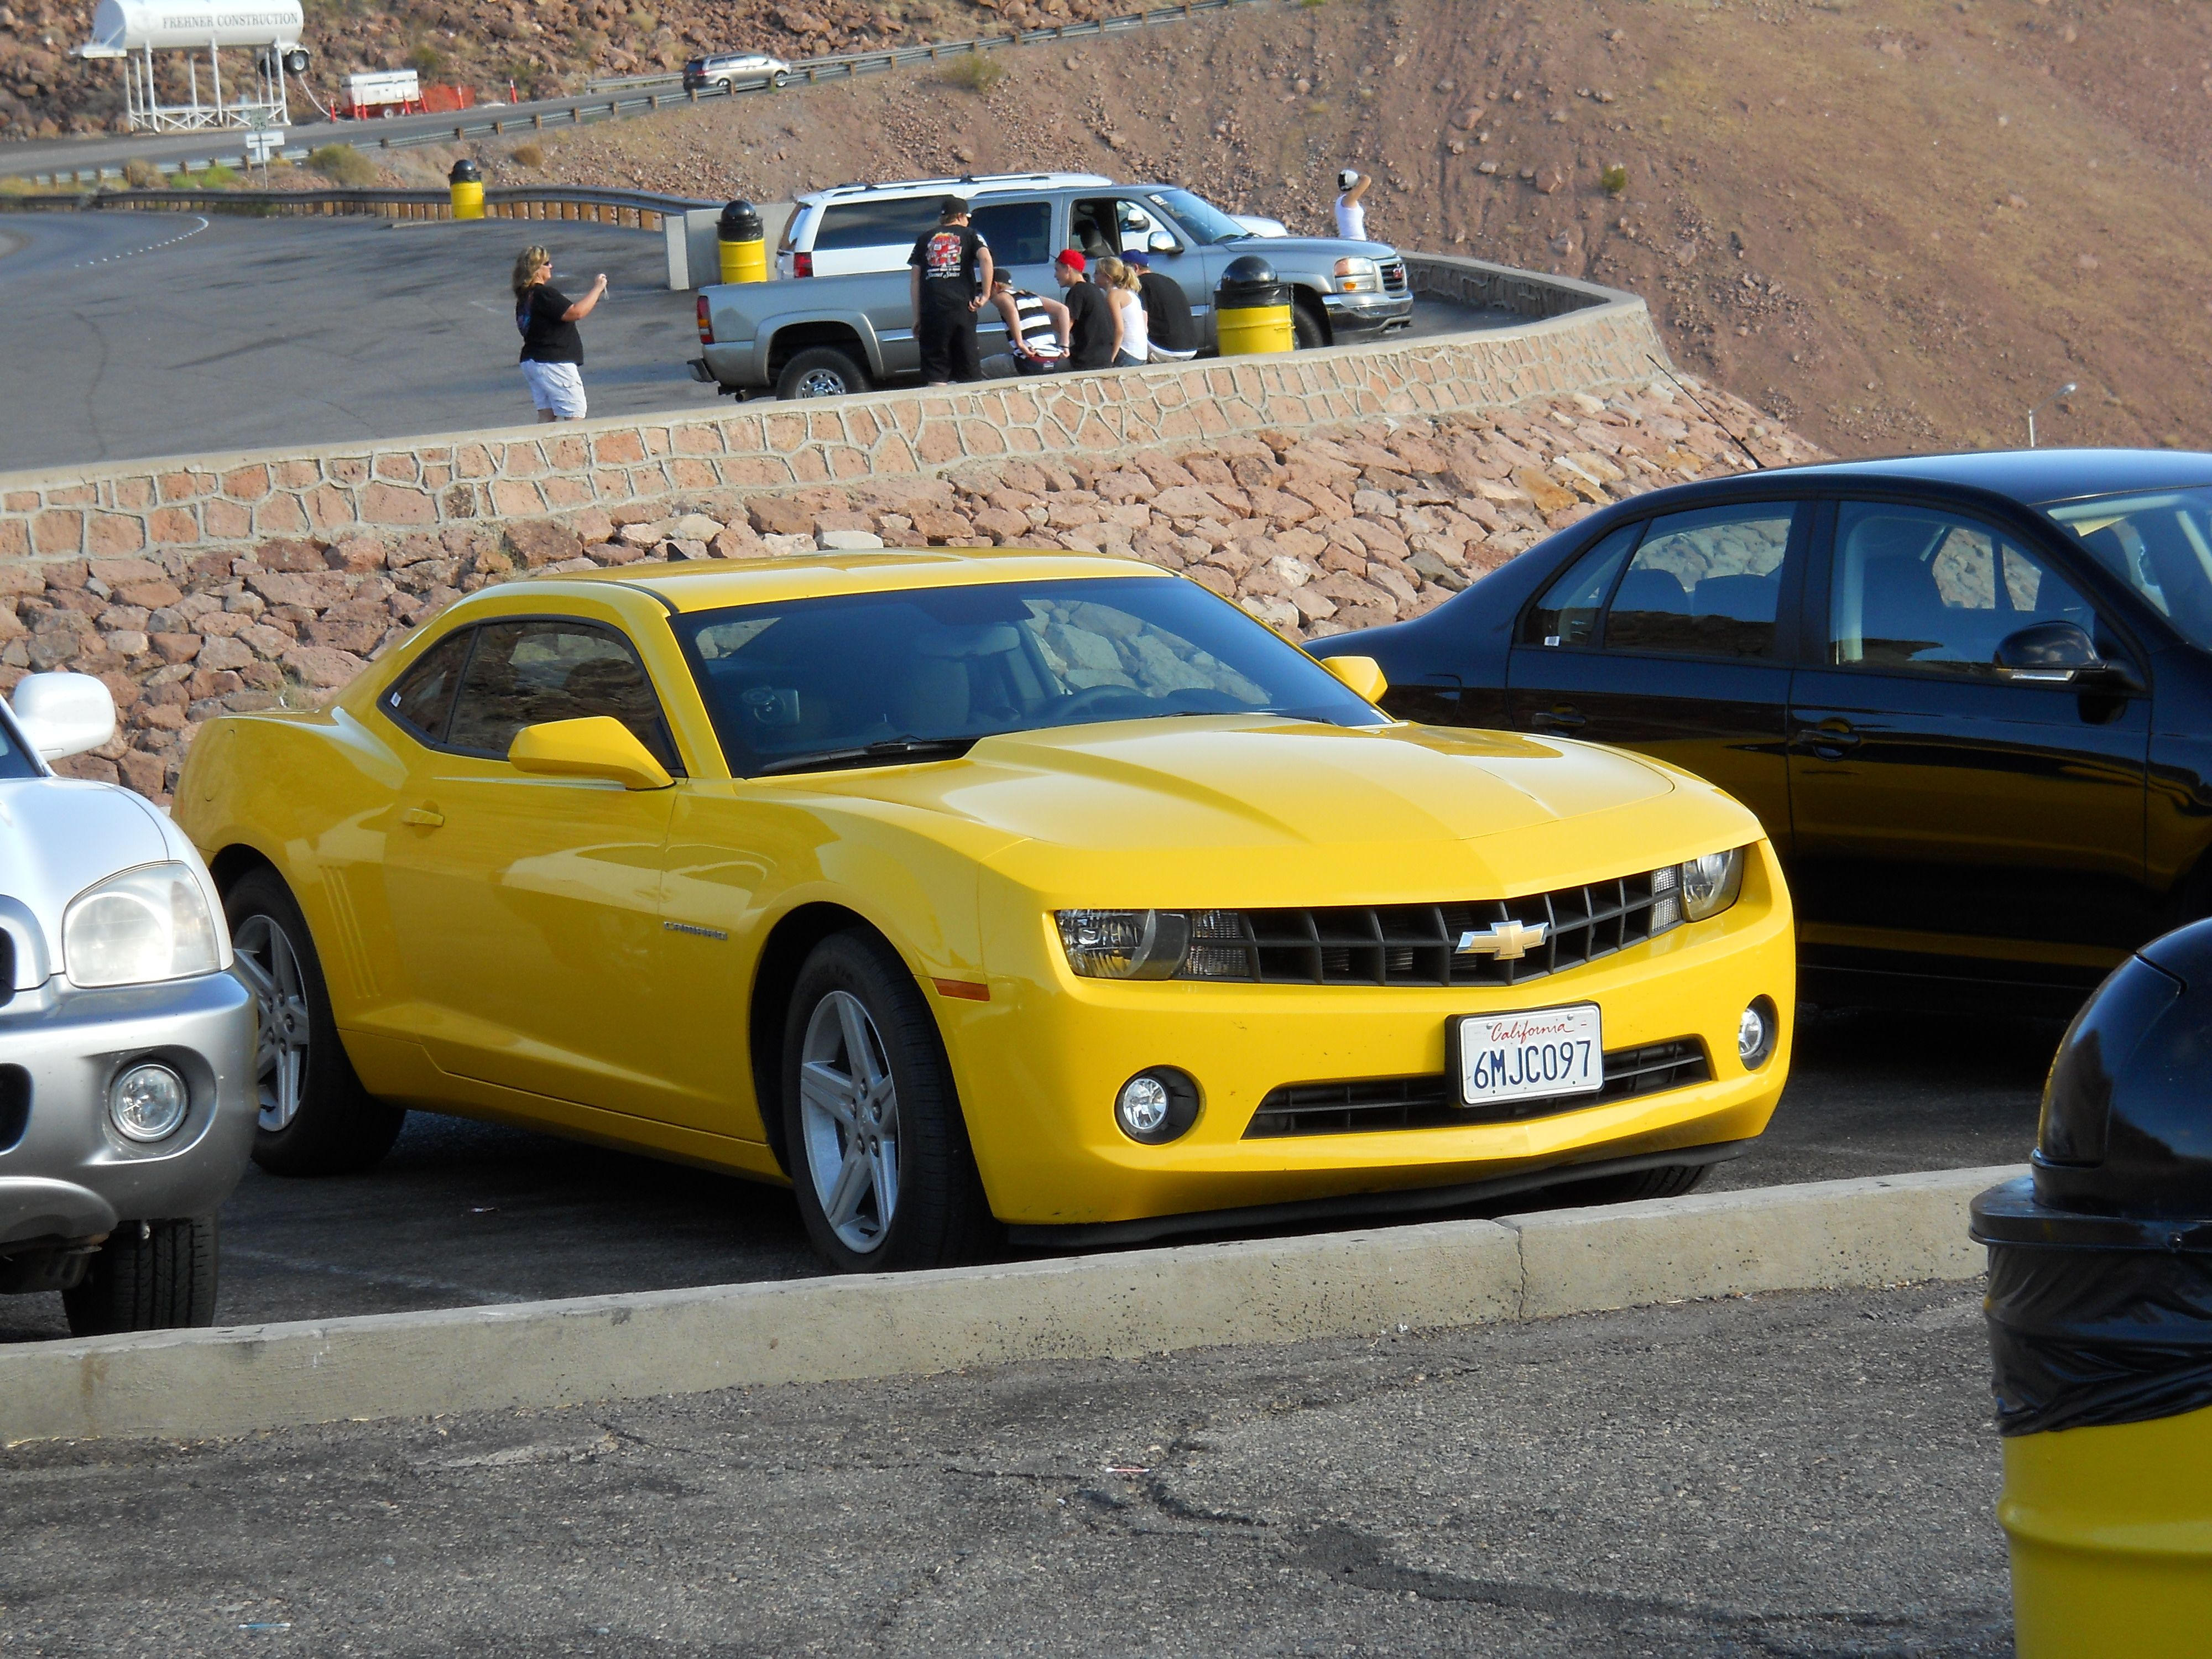 Bumblebee found near the hoover dam